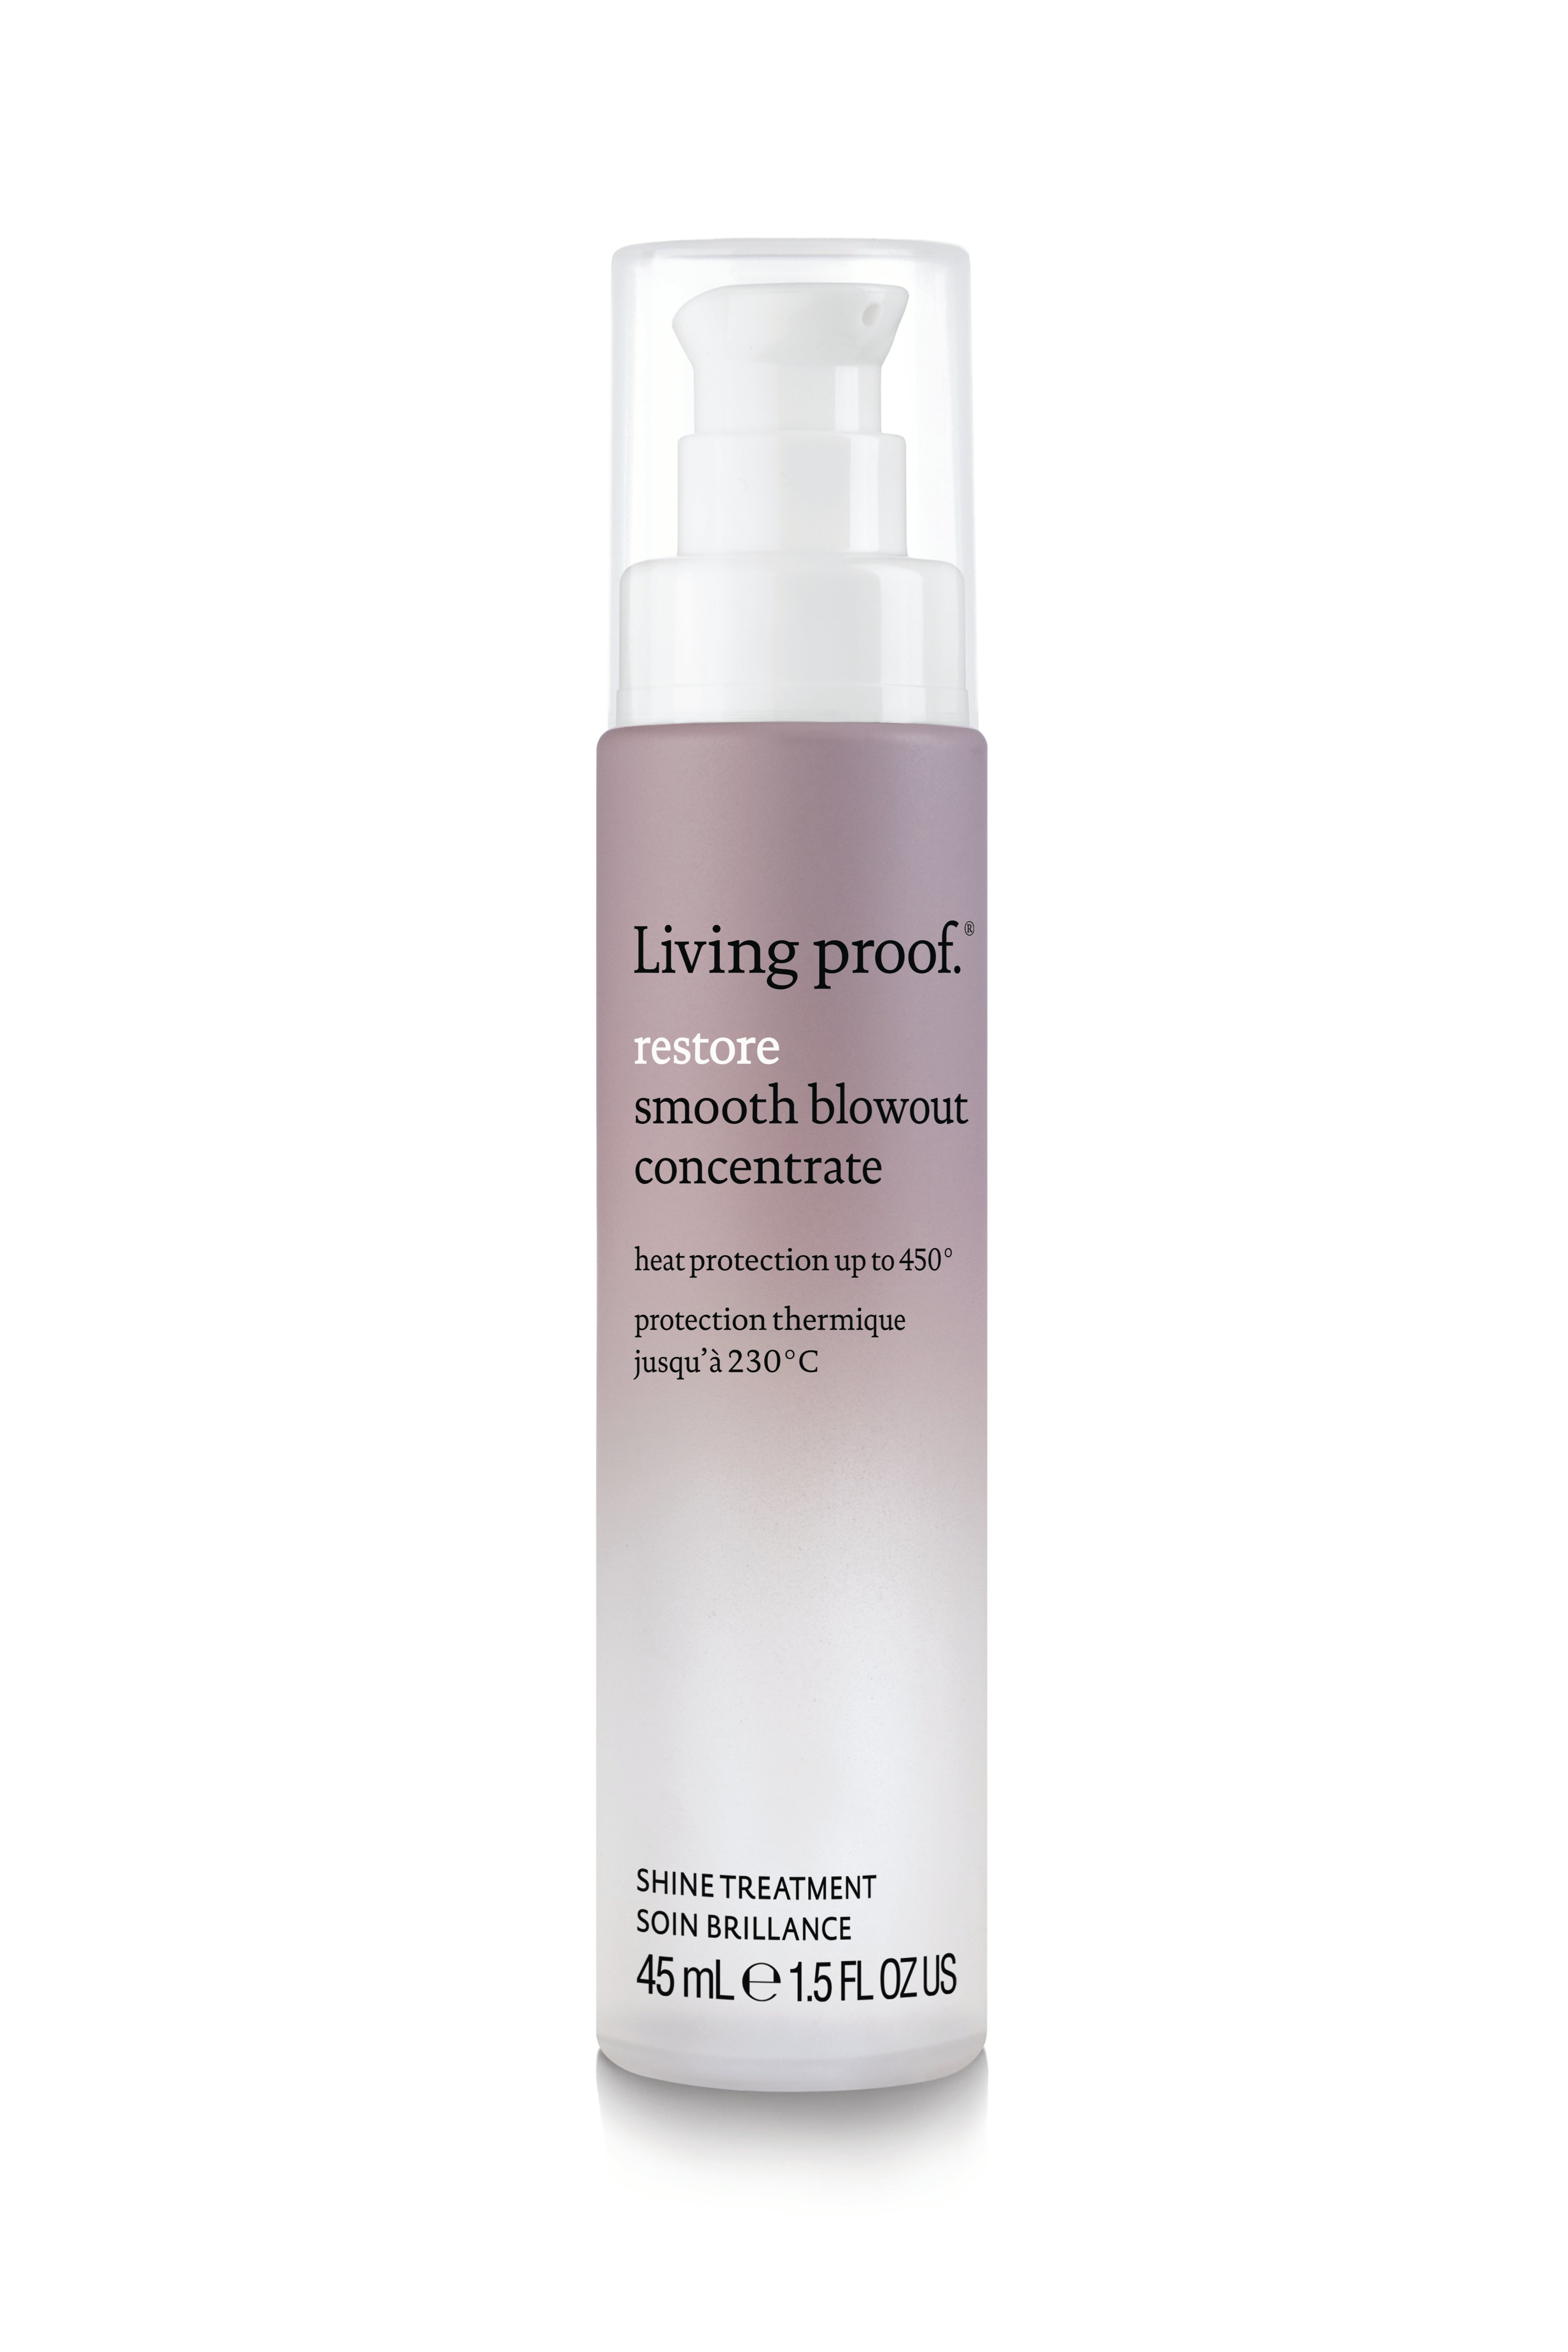 Living Proof Announces Restore Smooth Blowout Concentrate